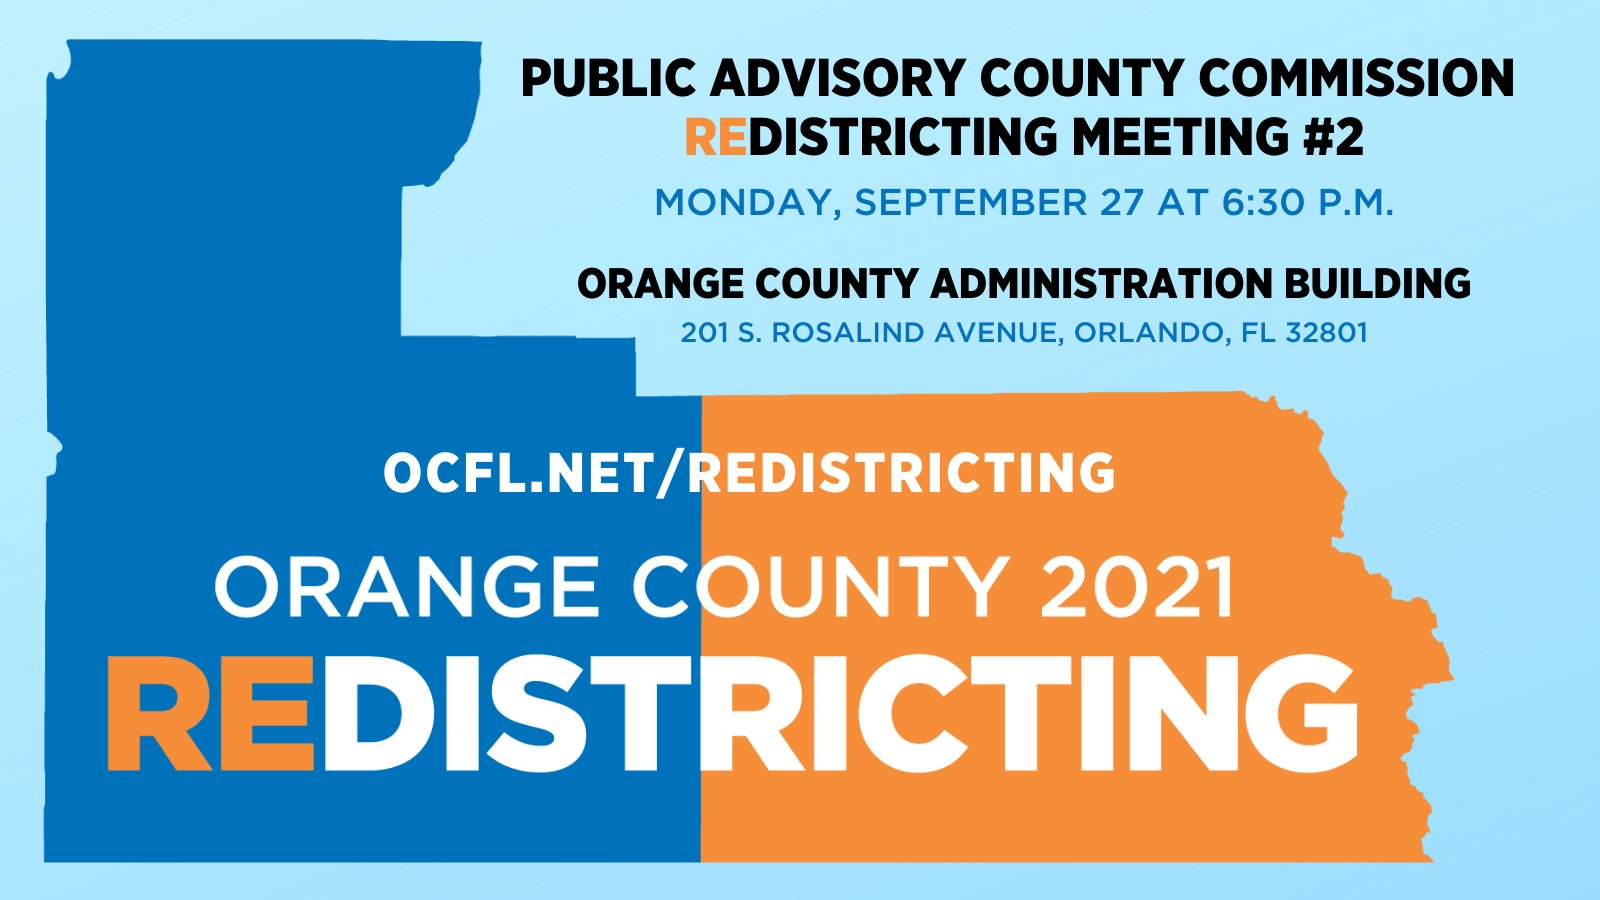 Public Advisory County Commission Redistricting Meeting 2 - September 27 at 6 30 PM - Orange County Administration Building - 201 S Rosalind Avenue Orlando FL 32801